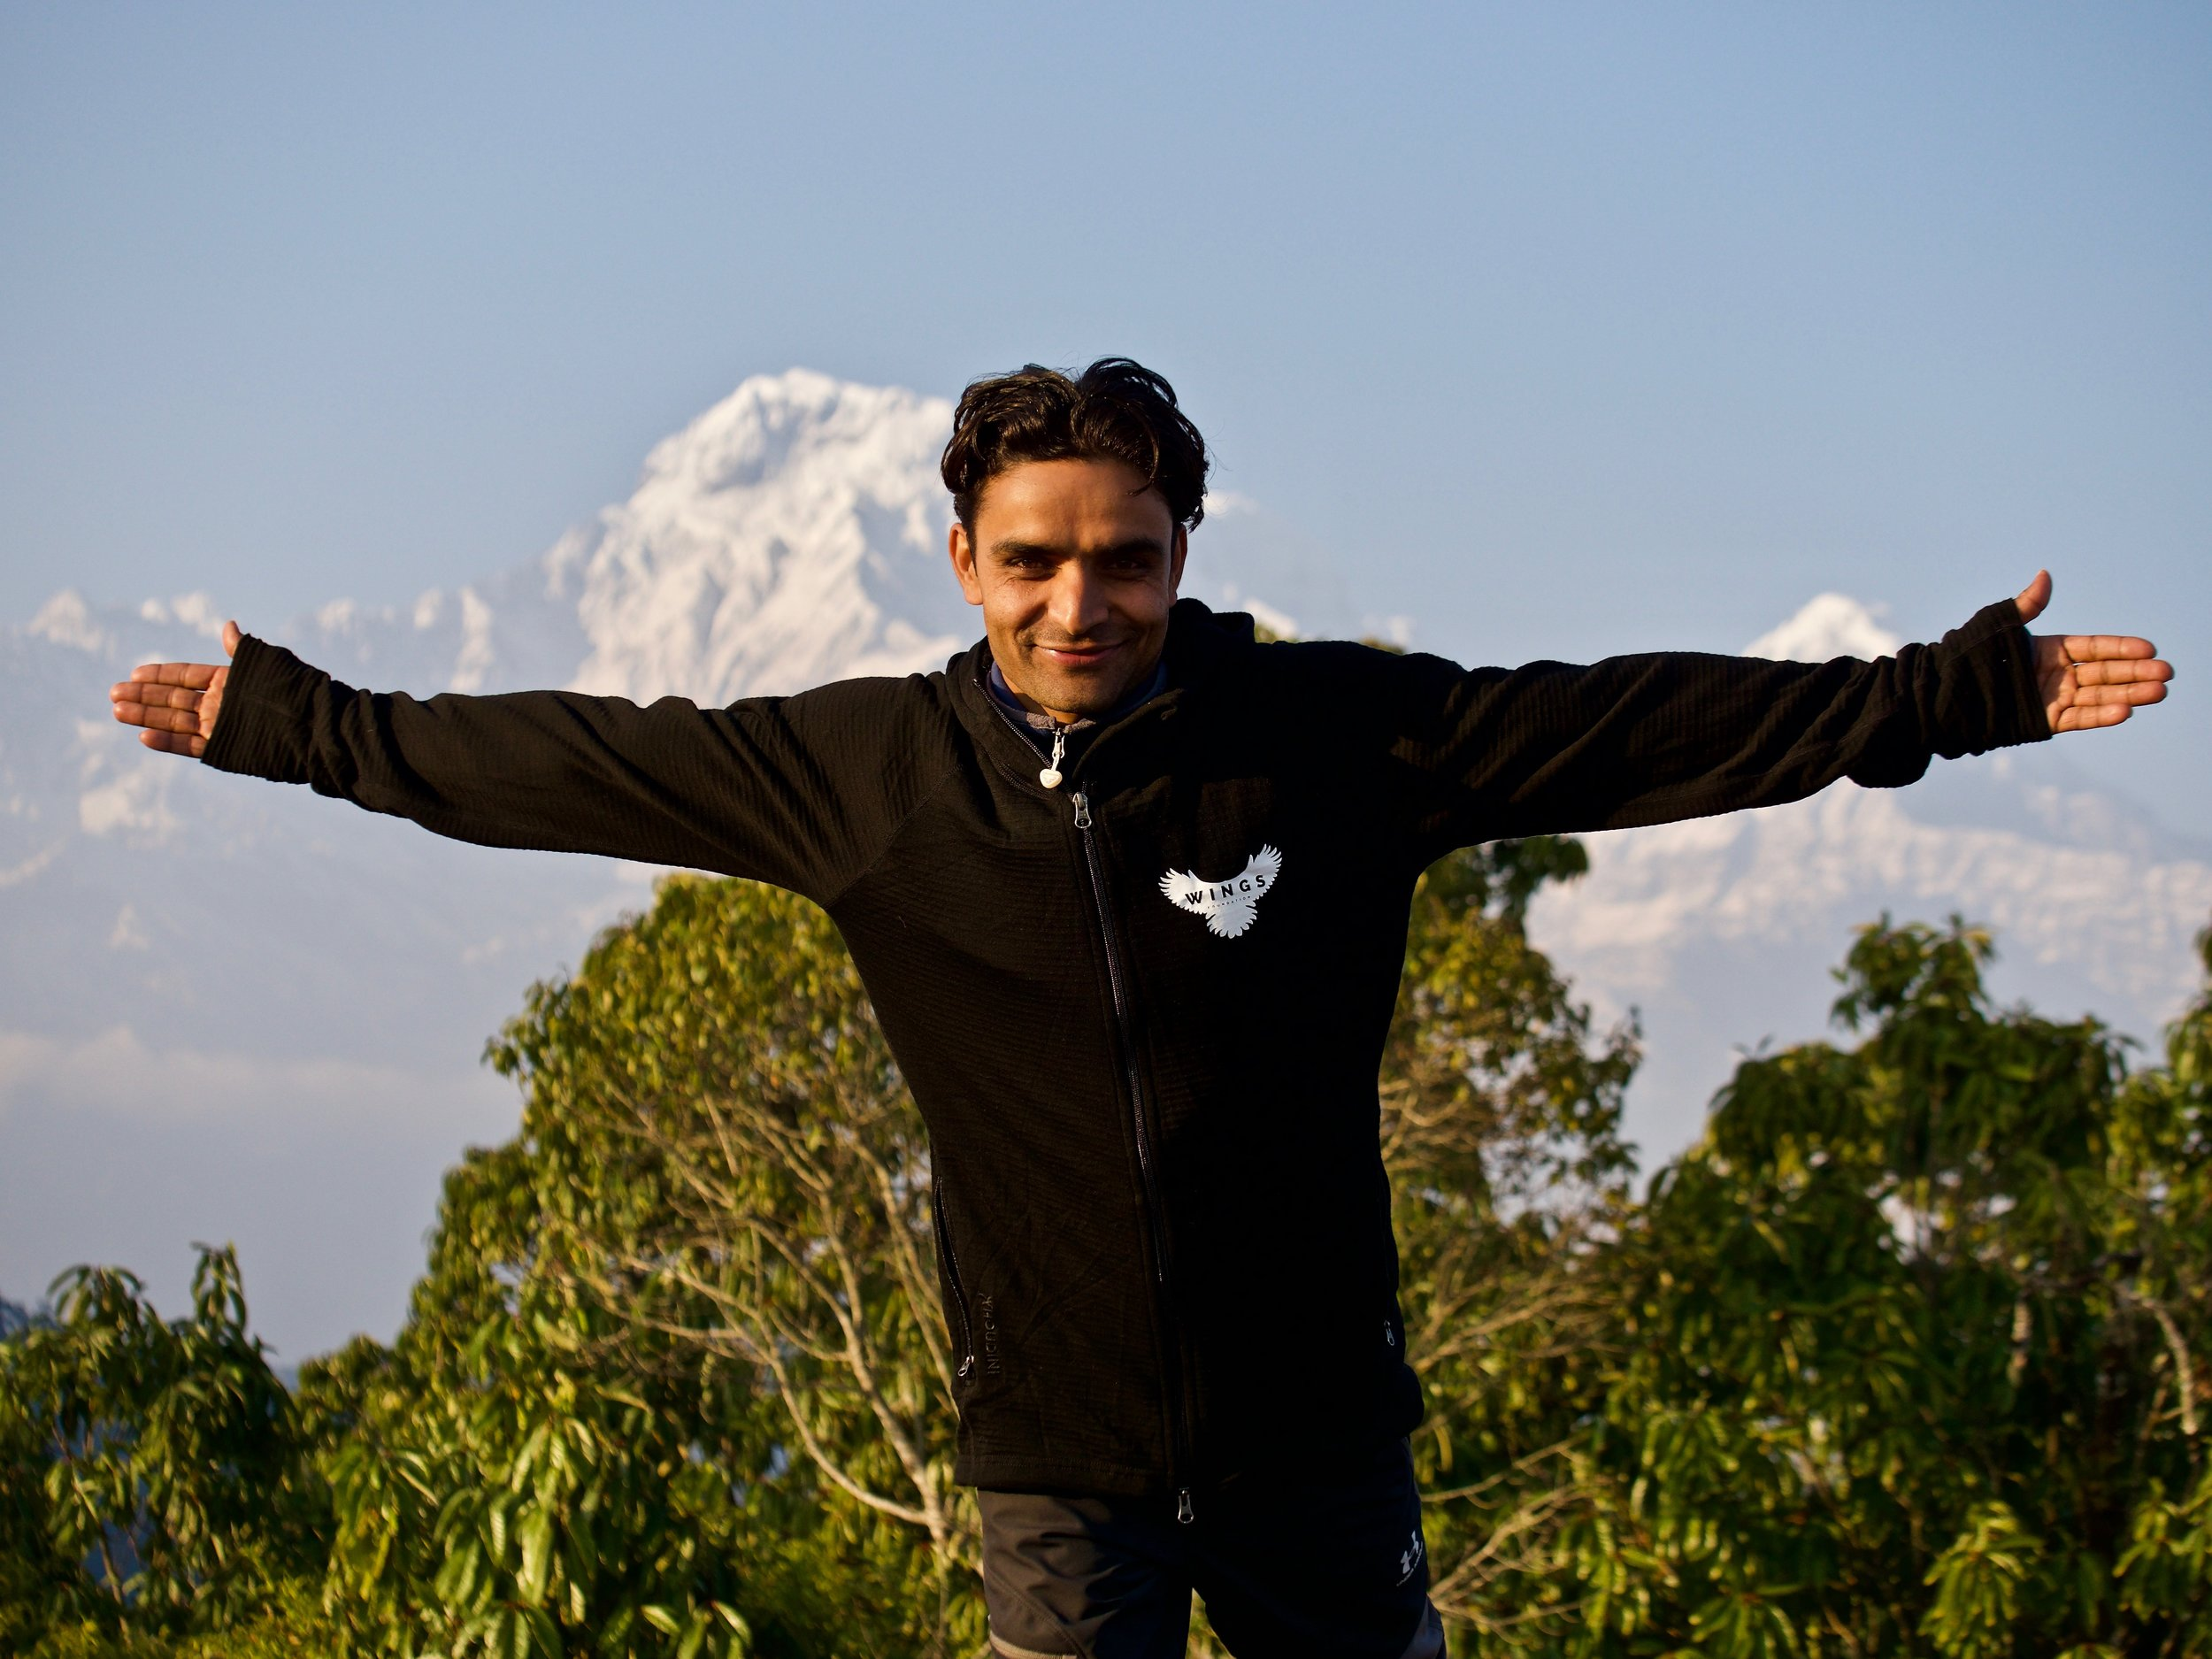 Deepak Pokharel - Trekking Guide, WINGS FoundationAssisting our efforts in the Himalayas with a great love for the mountains and the surrounding nature.